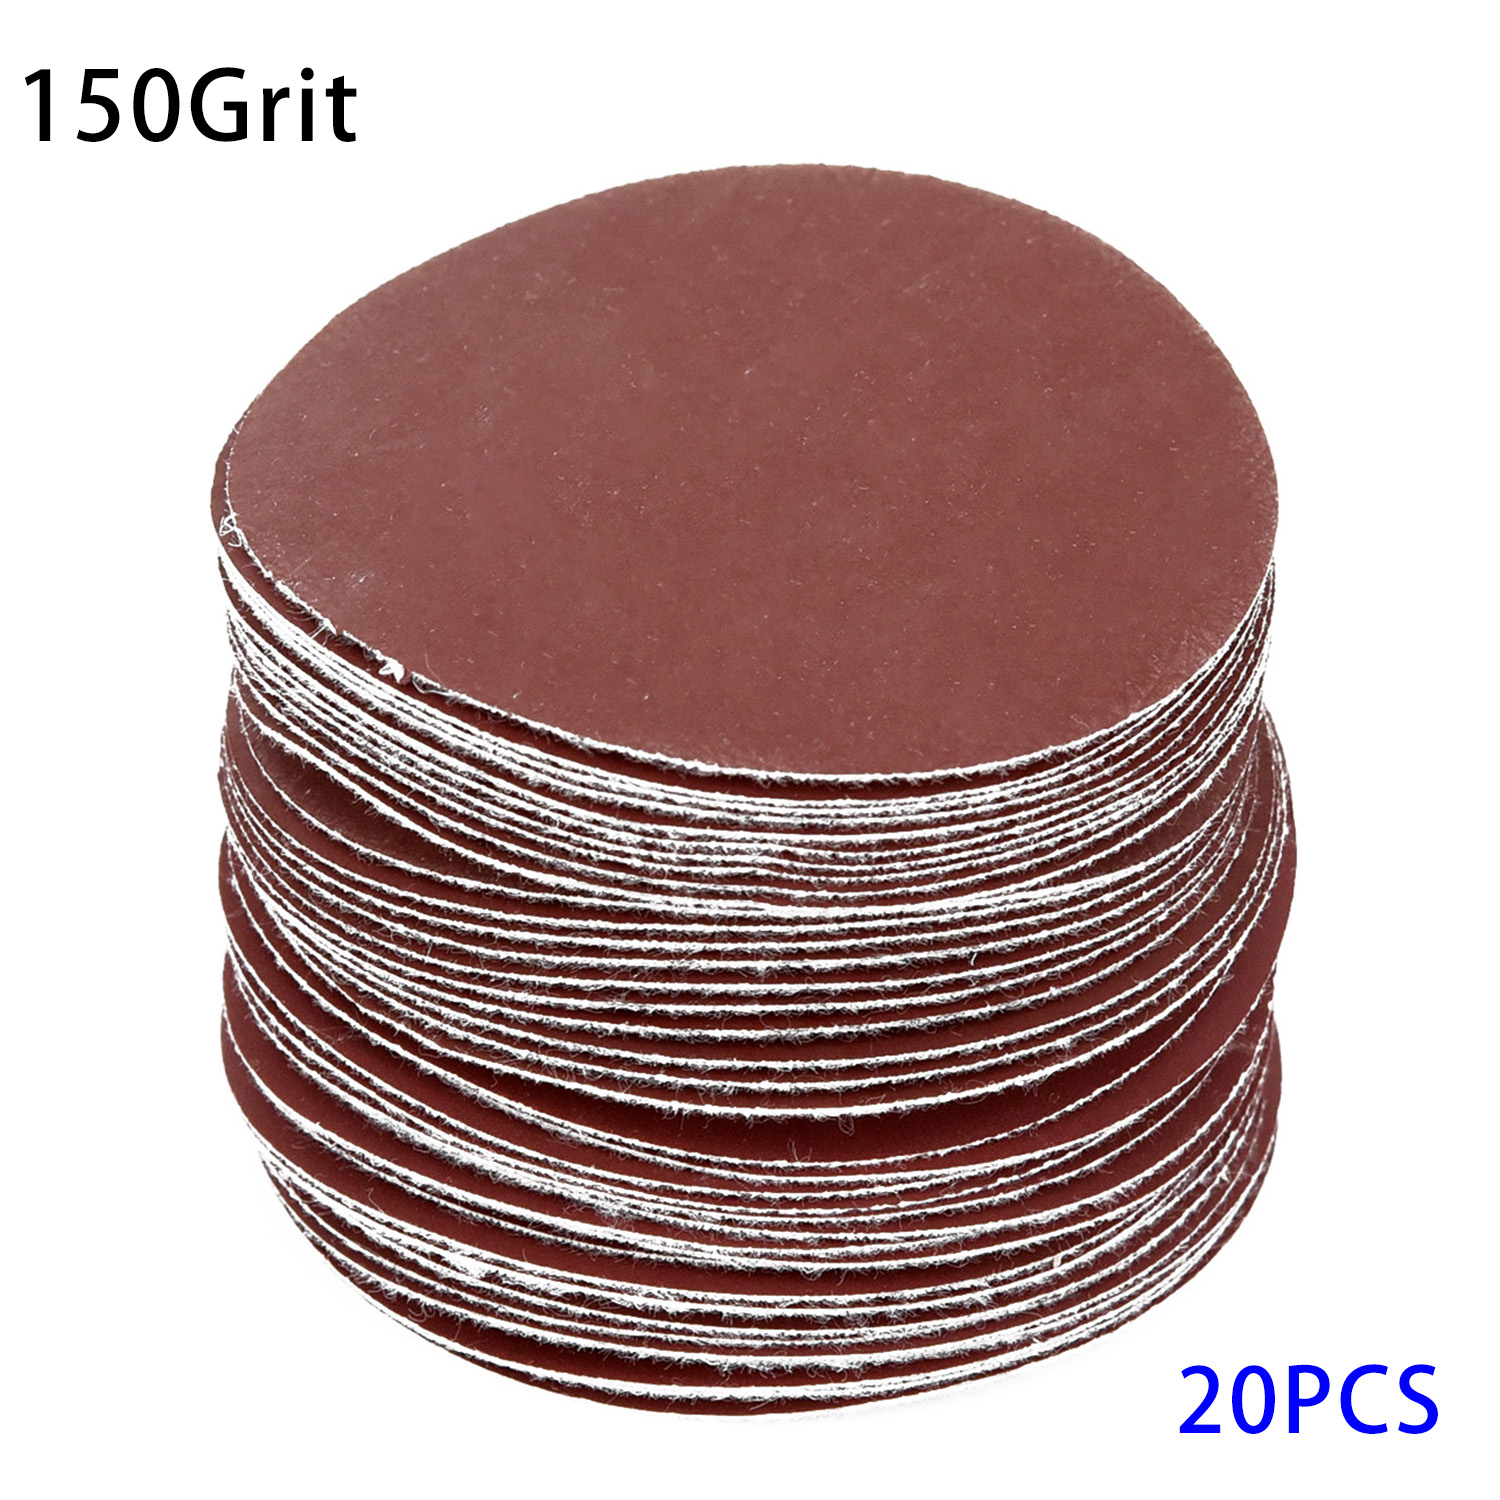 20pcs 75mm 3\\u201d 40~3000Grit Sander Discs Sanding Polishing Pads Sandpapers Durable